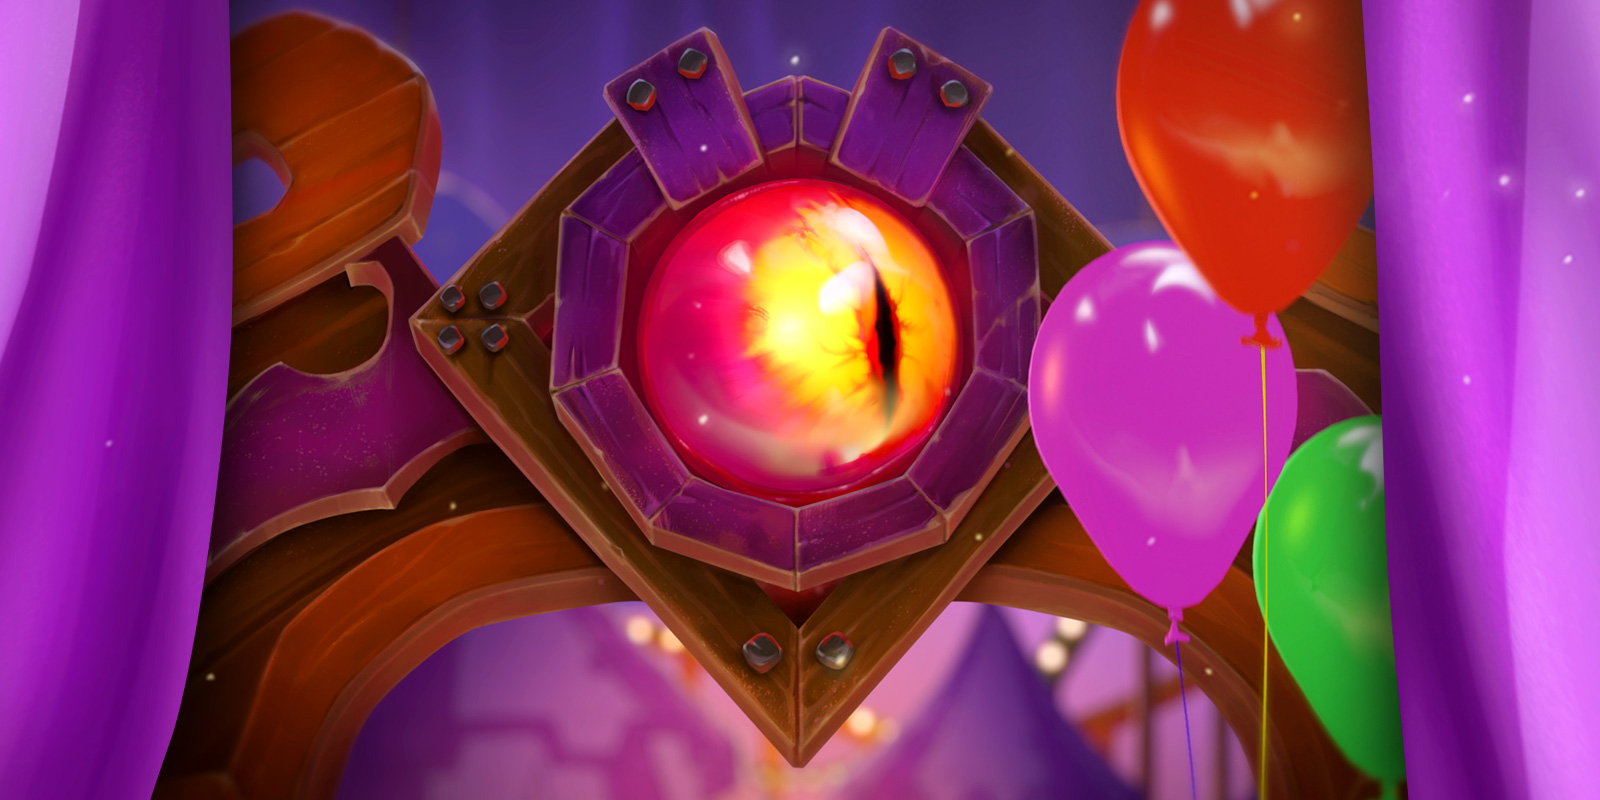 Blizzard-teases-Hearthstone-Fall-Reveal-with-expansion-details-likely-1.jpg